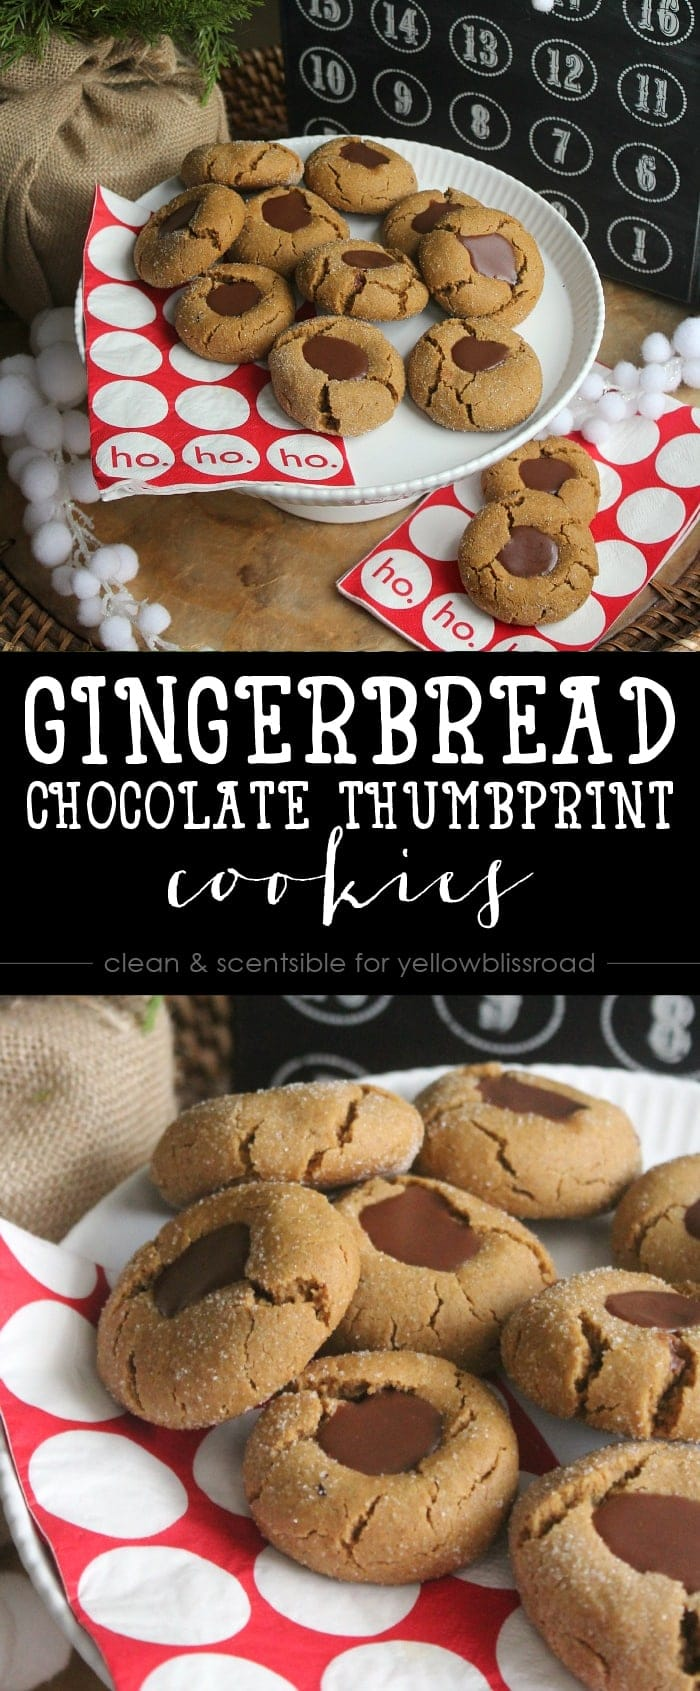 thumbprint cookies gingerbread cheesecake thumbprint cookies recipes ...